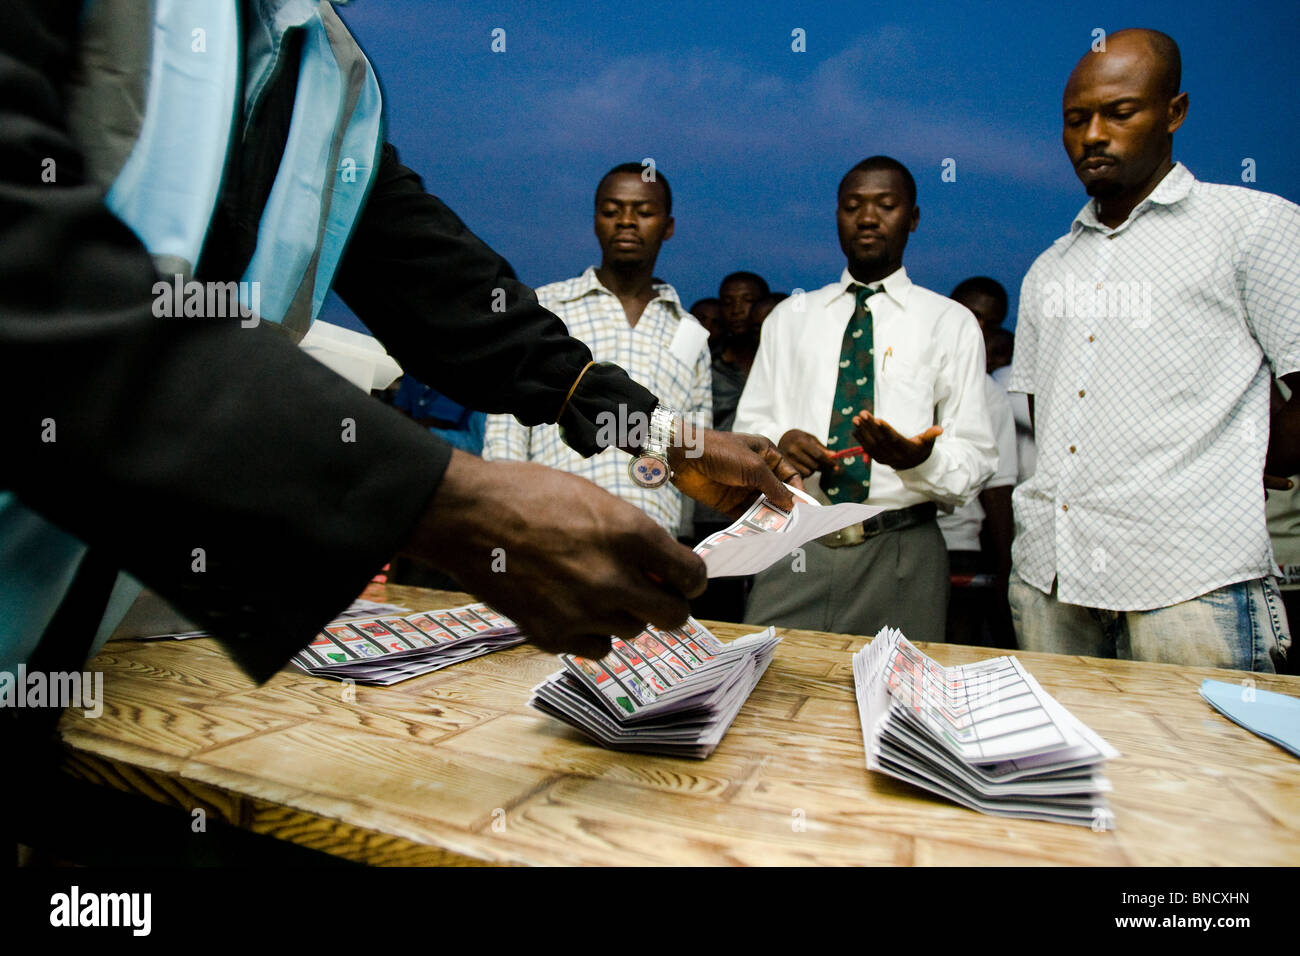 Electoral commission workers count ballots after the first round of presidential elections in Accra, Ghana - Stock Image